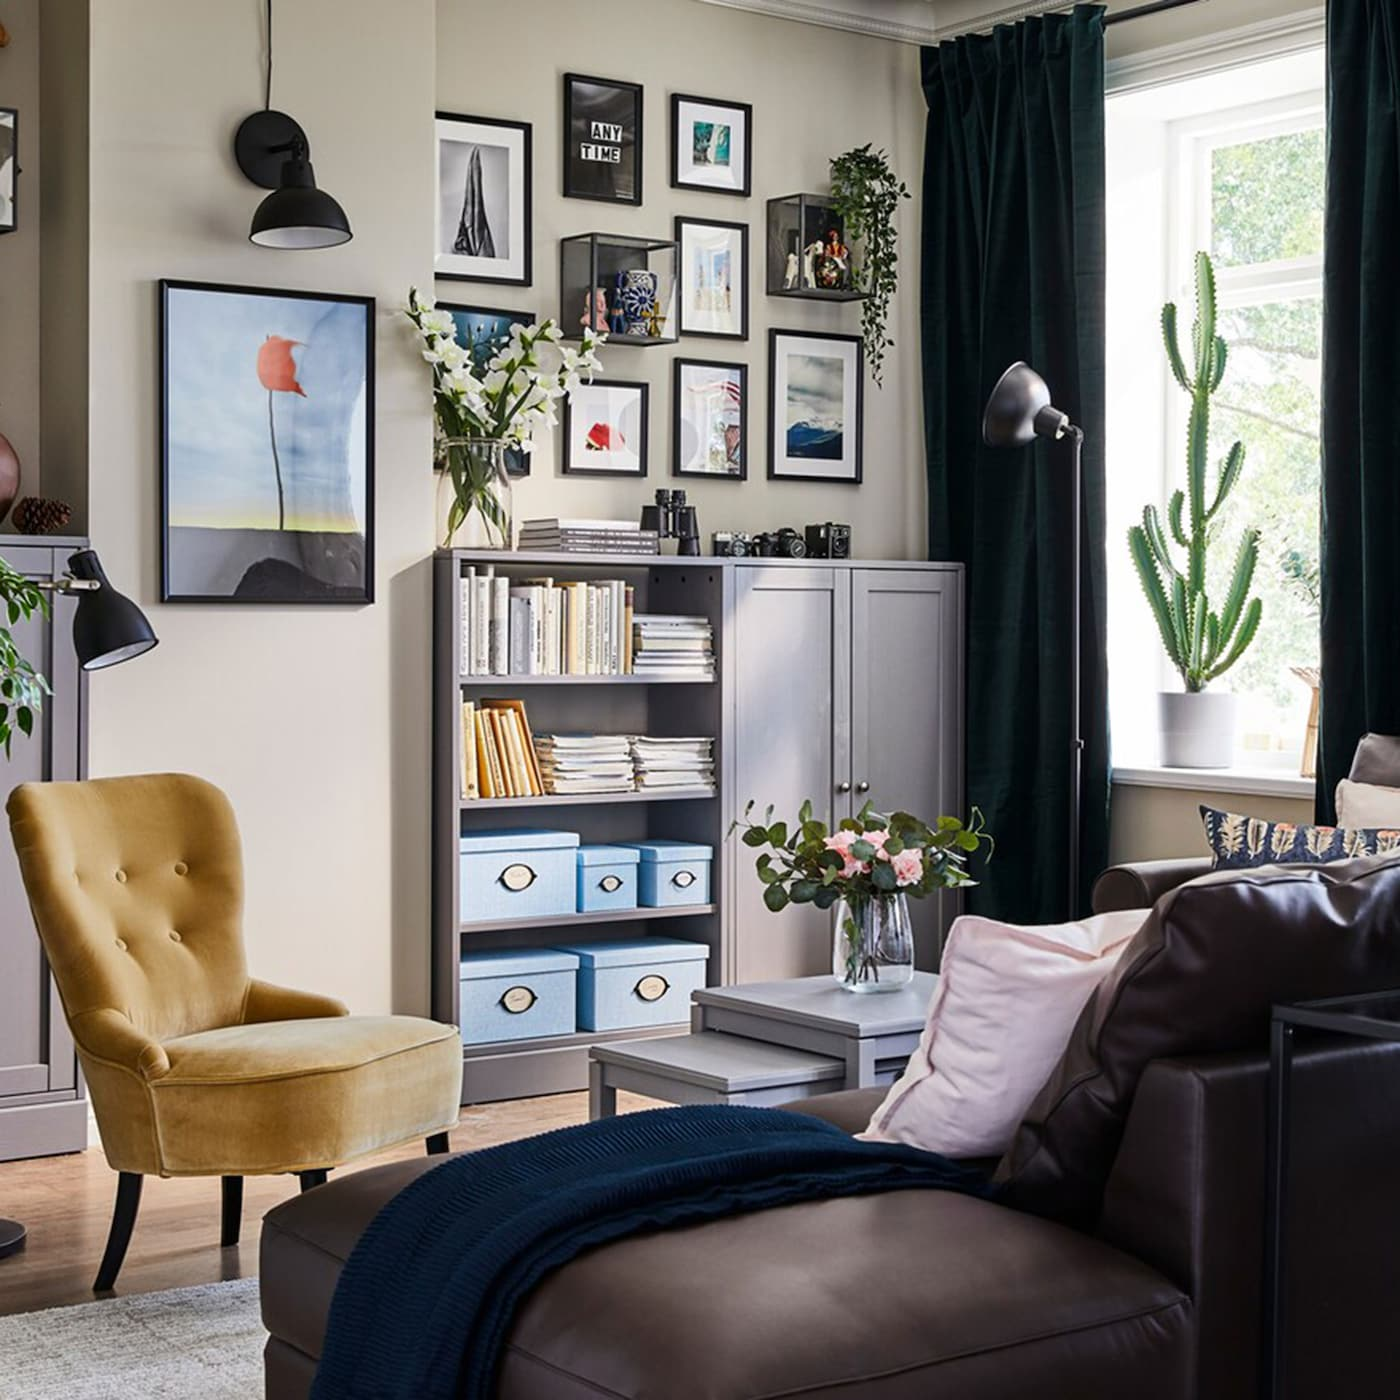 A small space living room for big adventurers - IKEA